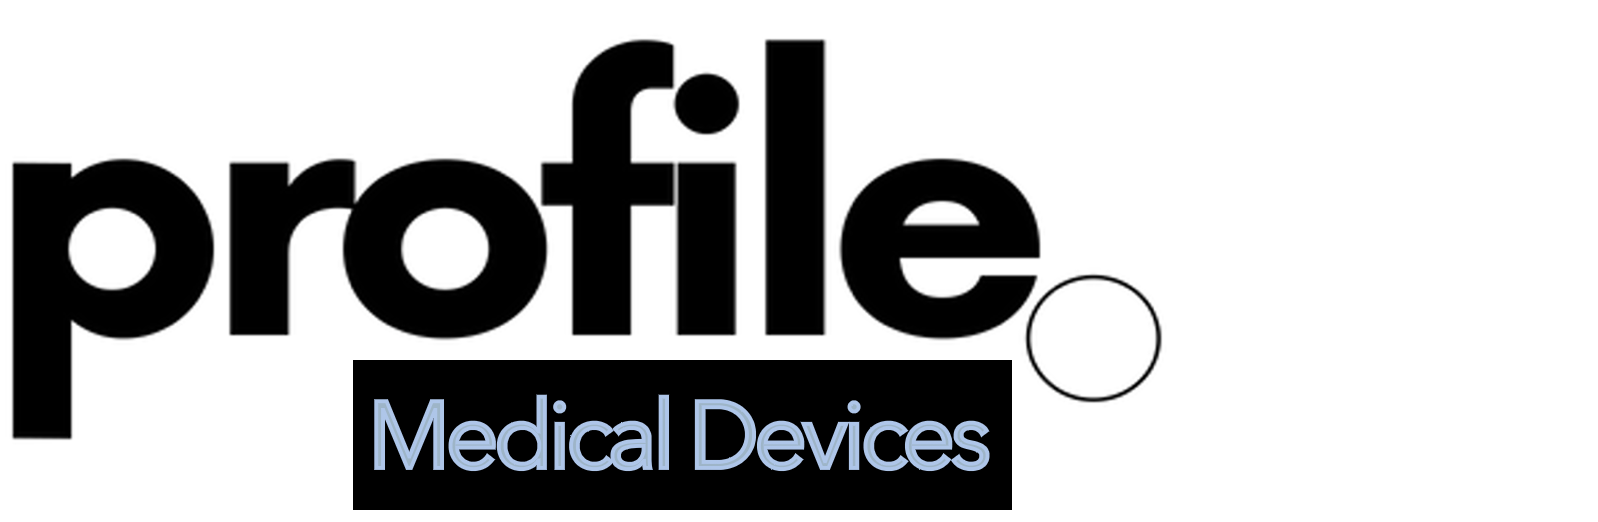 Profile Medical Devices